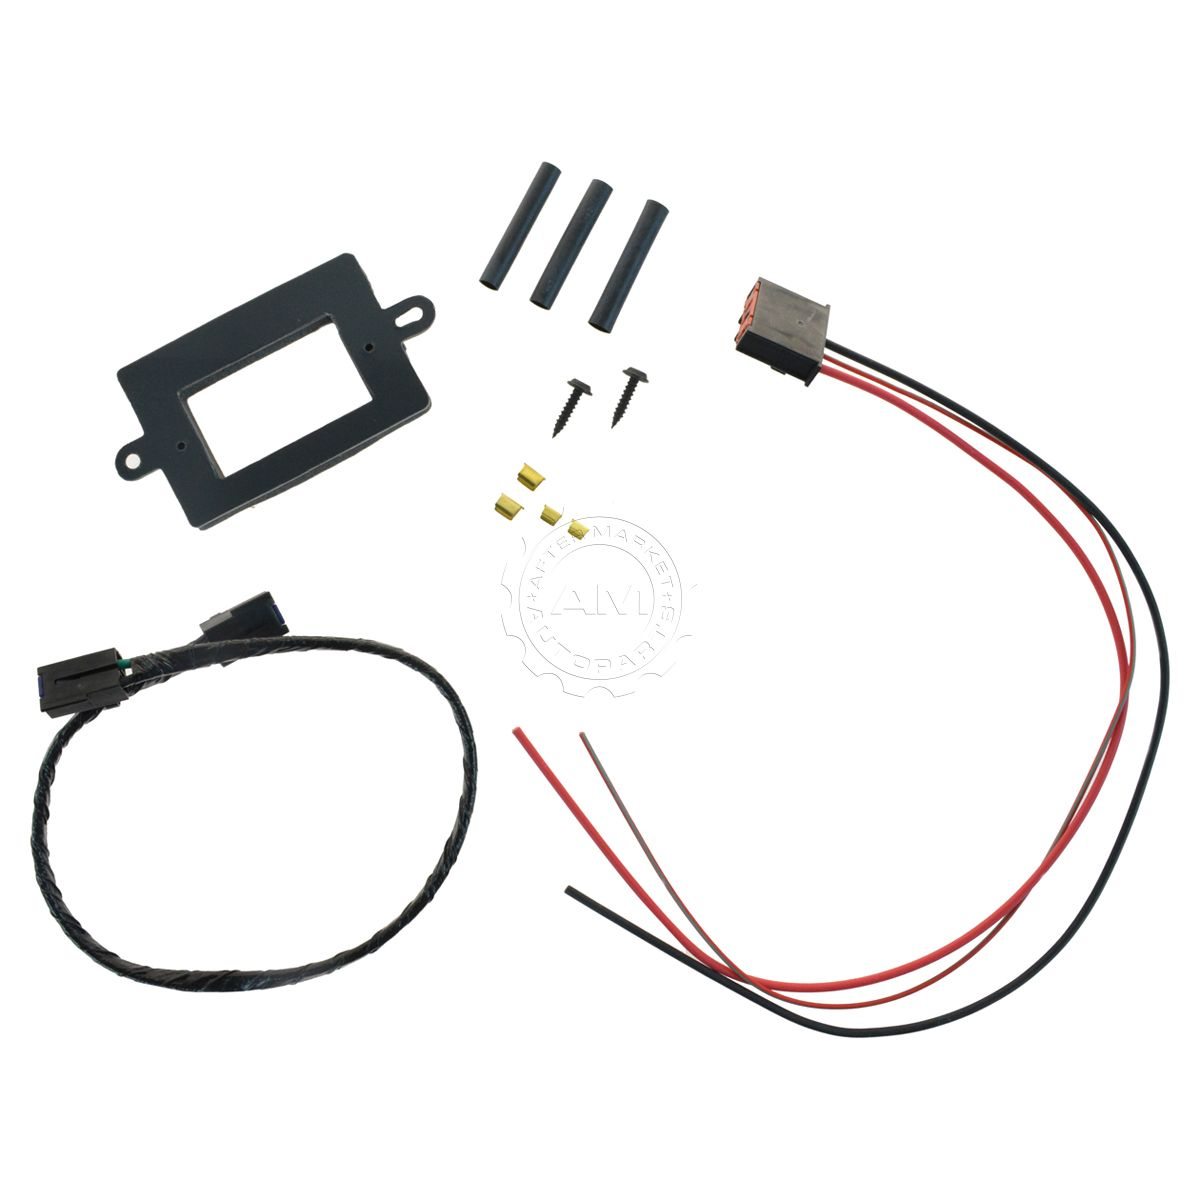 Resistor Wiring Harness 2004 Jeep Cherokee Diagrams 1999 Atc Blower Motor Upgrade Kit For 99 04 Grand 2000 Alternator Diagram